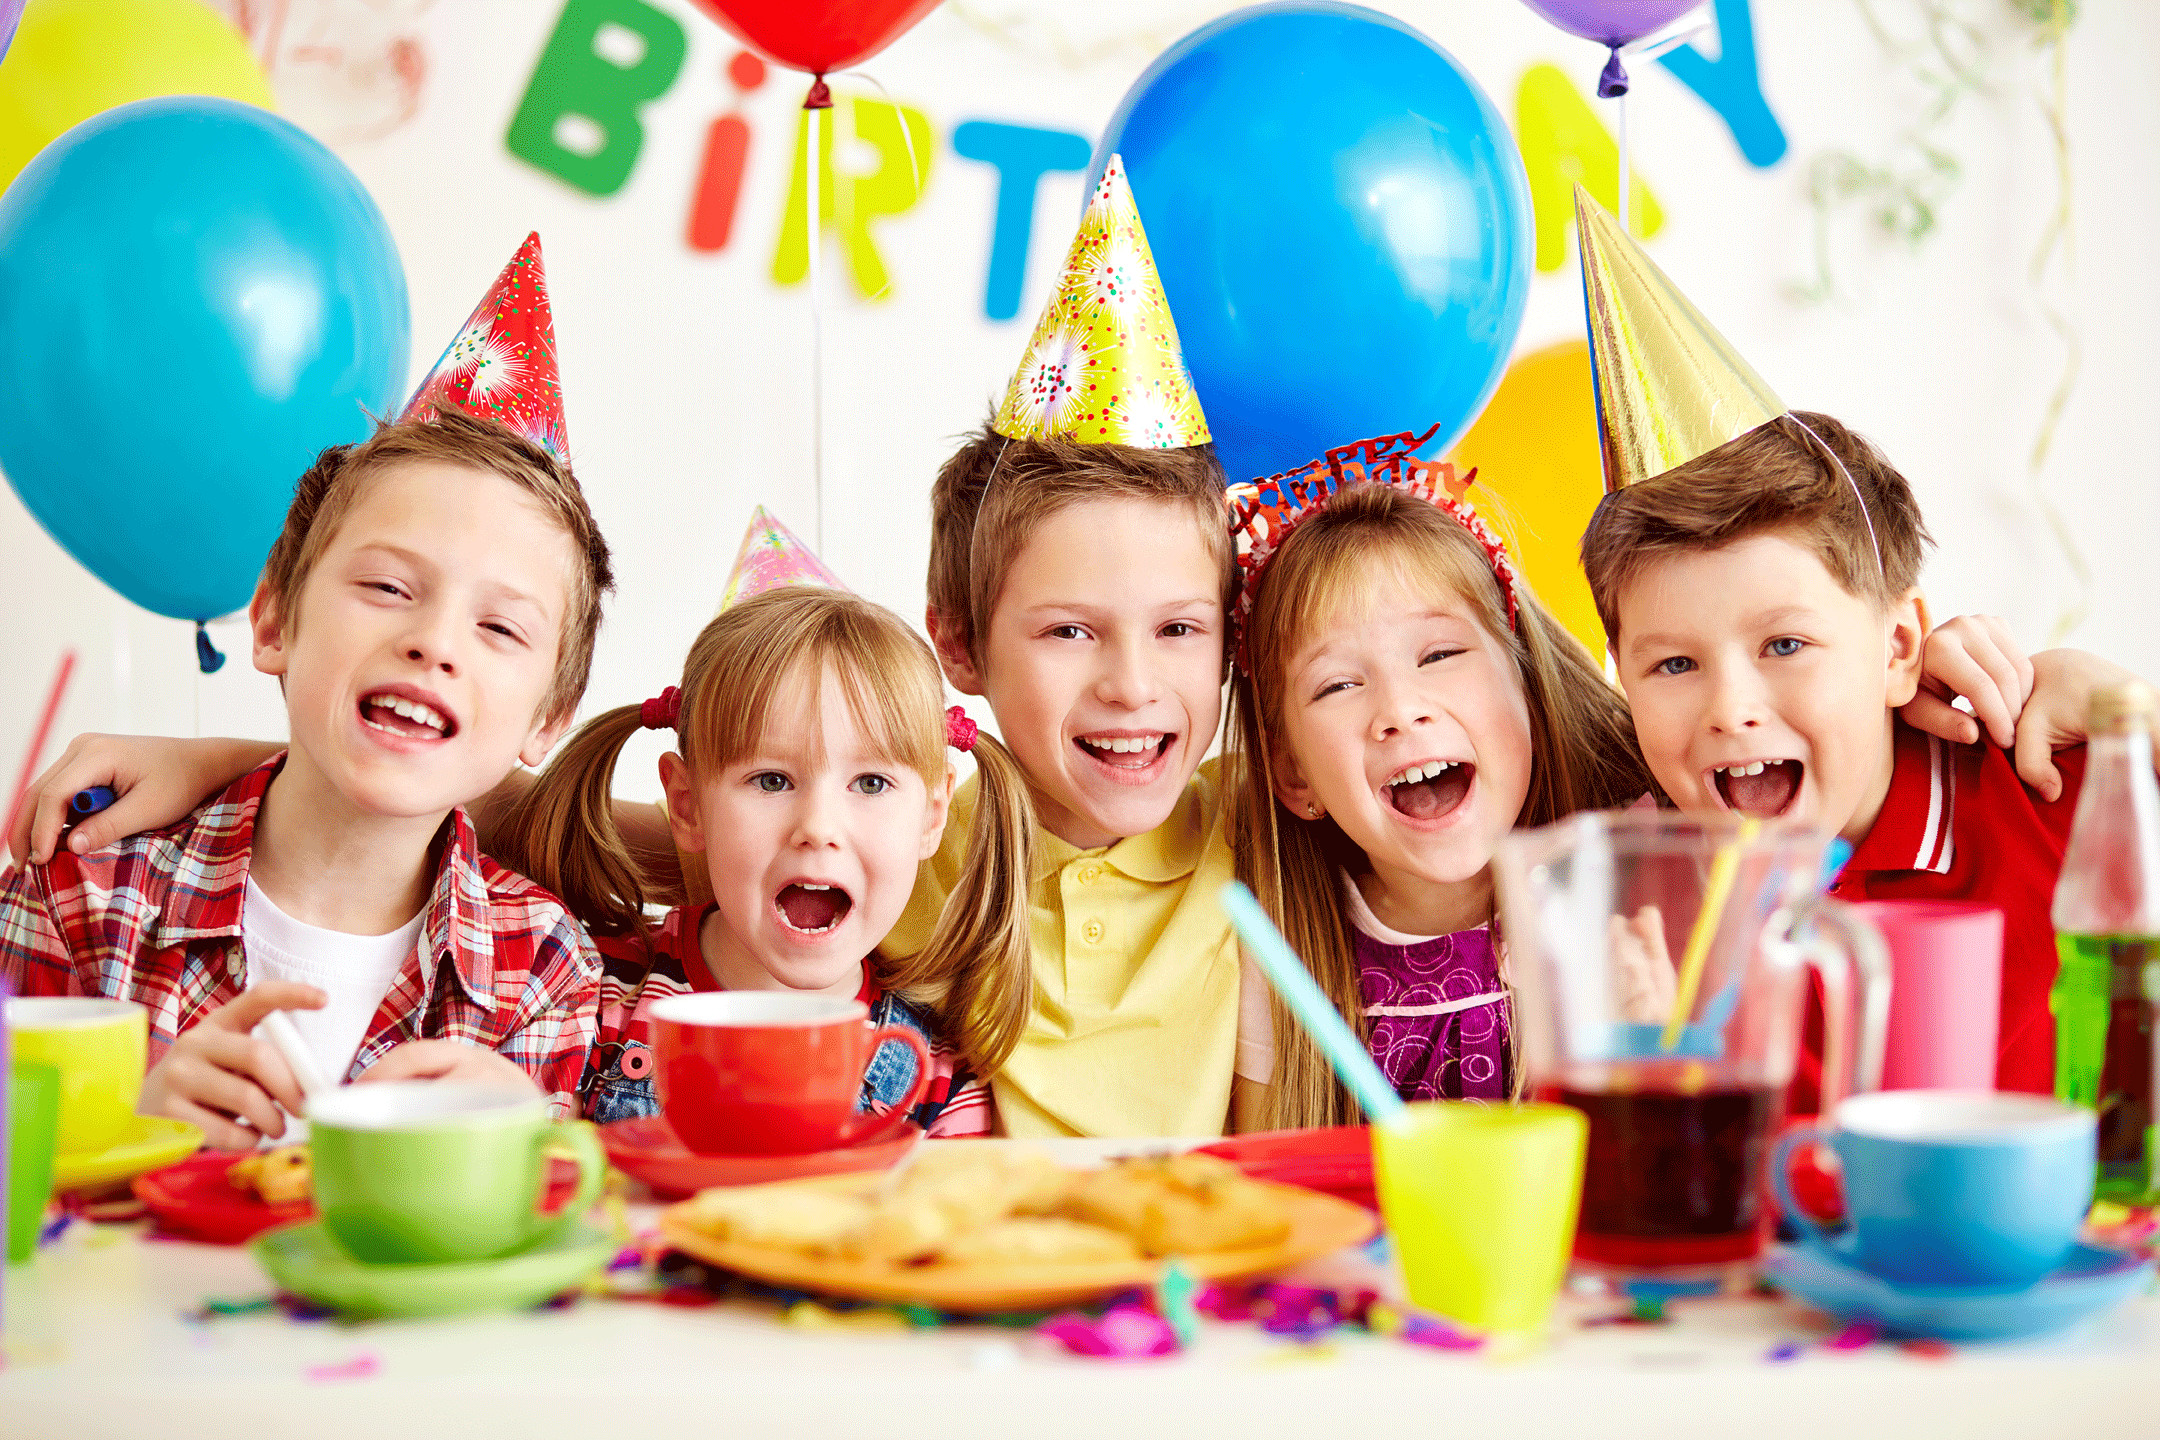 Best ideas about Kids Birthday Party . Save or Pin Birthday Parties Downingtown PlaydiumDowningtown Playdium Now.